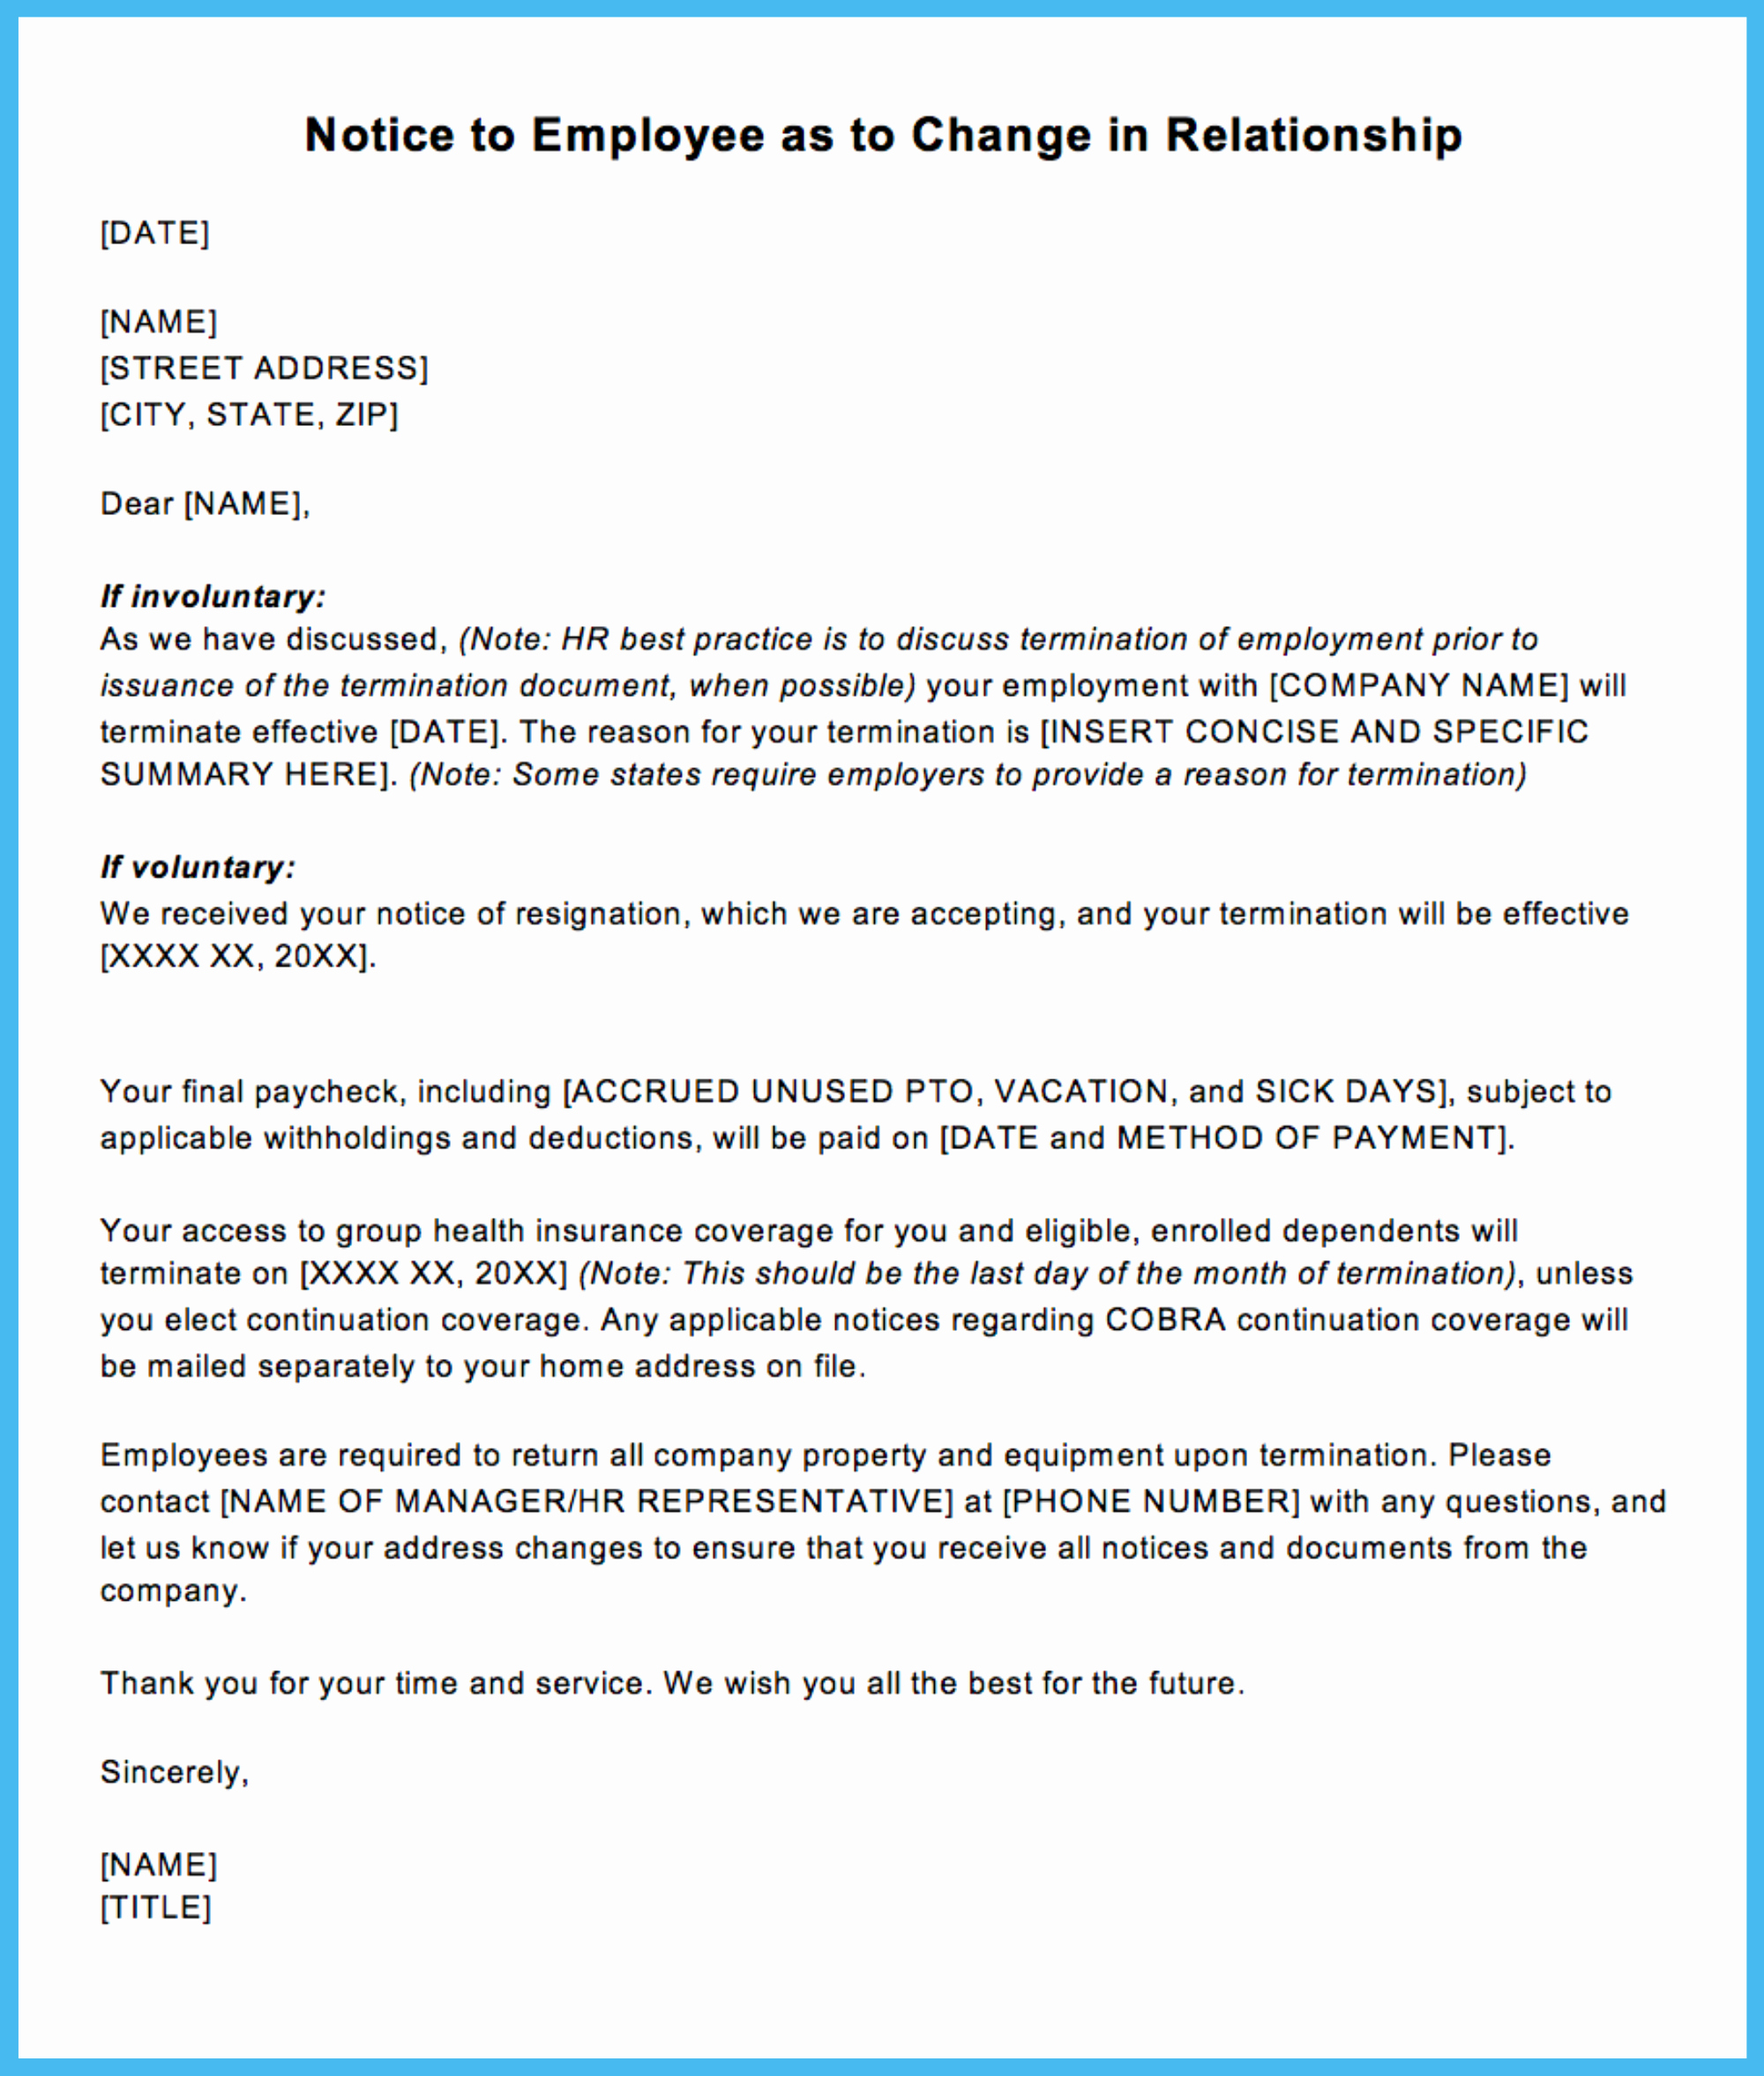 Letter to Terminate Business Relationship Inspirational Sample Termination Letter for Letting An Employee Go